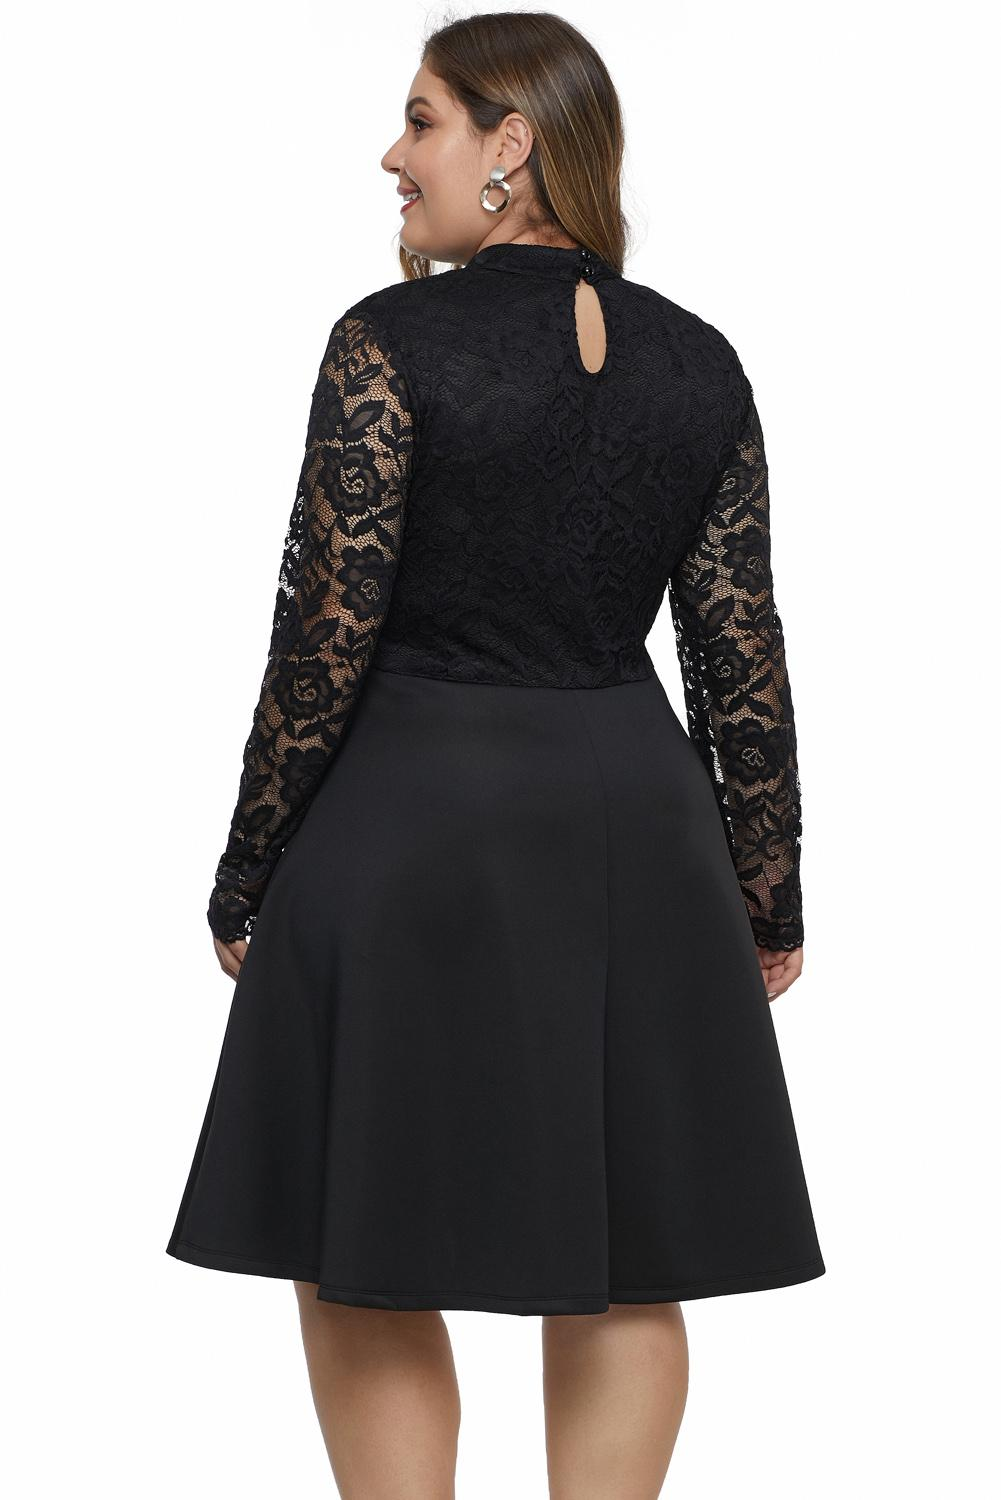 Black Keyhole Lace Bustier Plus Size Dress